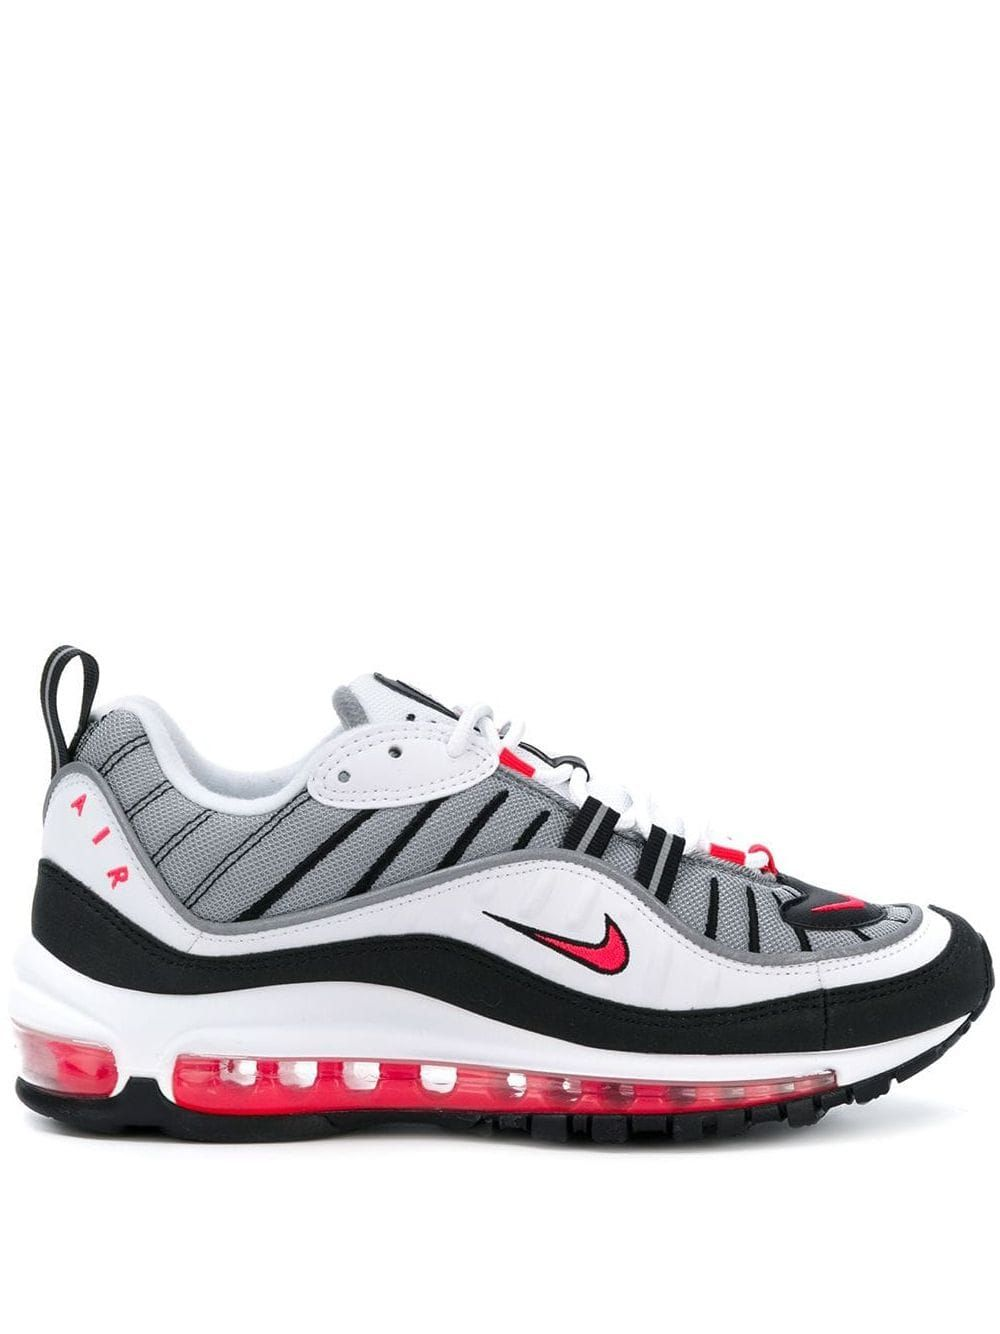 Nike Air Max 98 lace up Sneakers in 2020   Nike air max